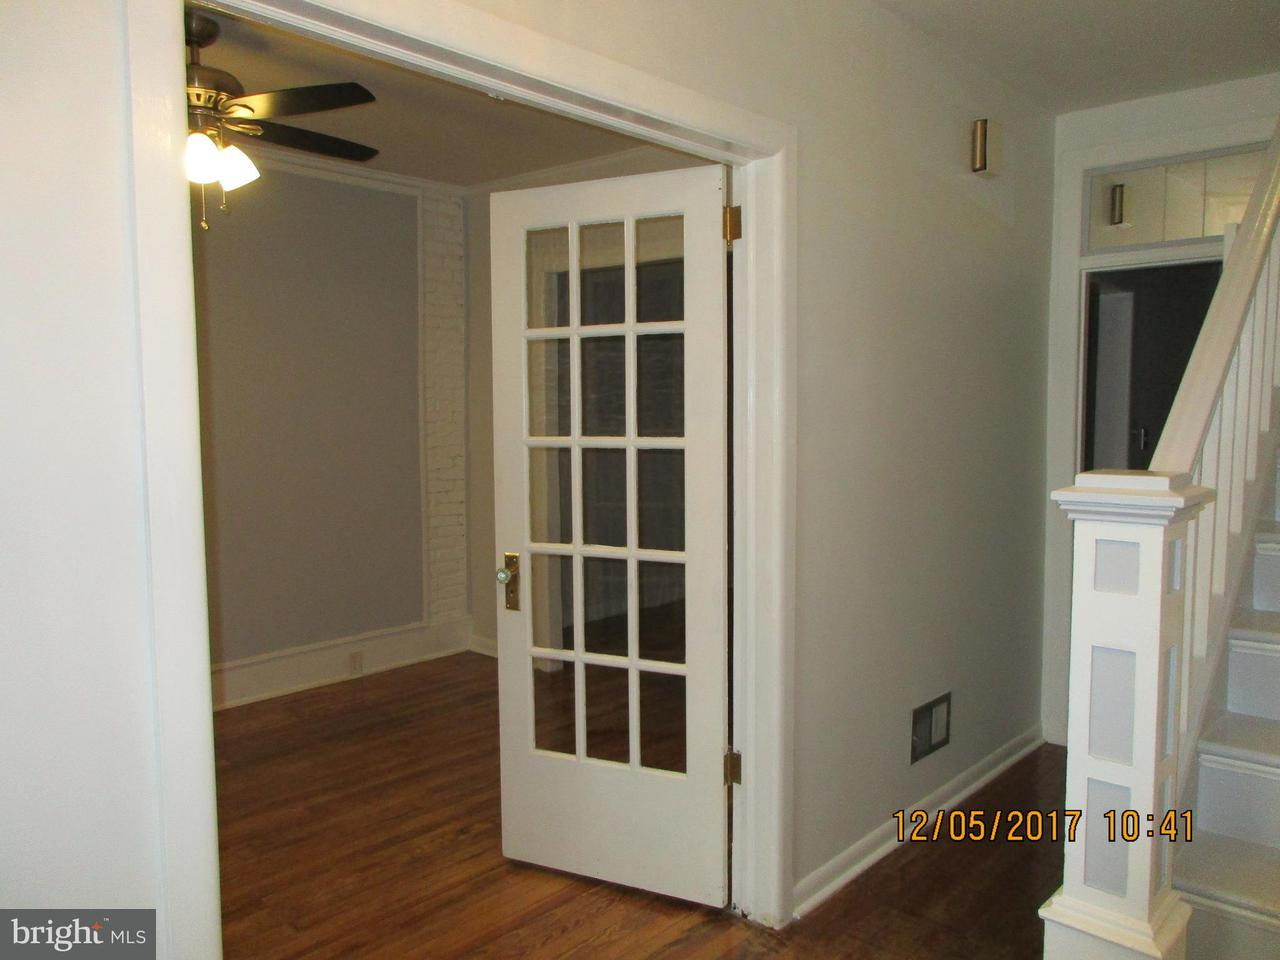 Additional photo for property listing at 129 Quincy Pl NE  Washington, District Of Columbia 20002 United States